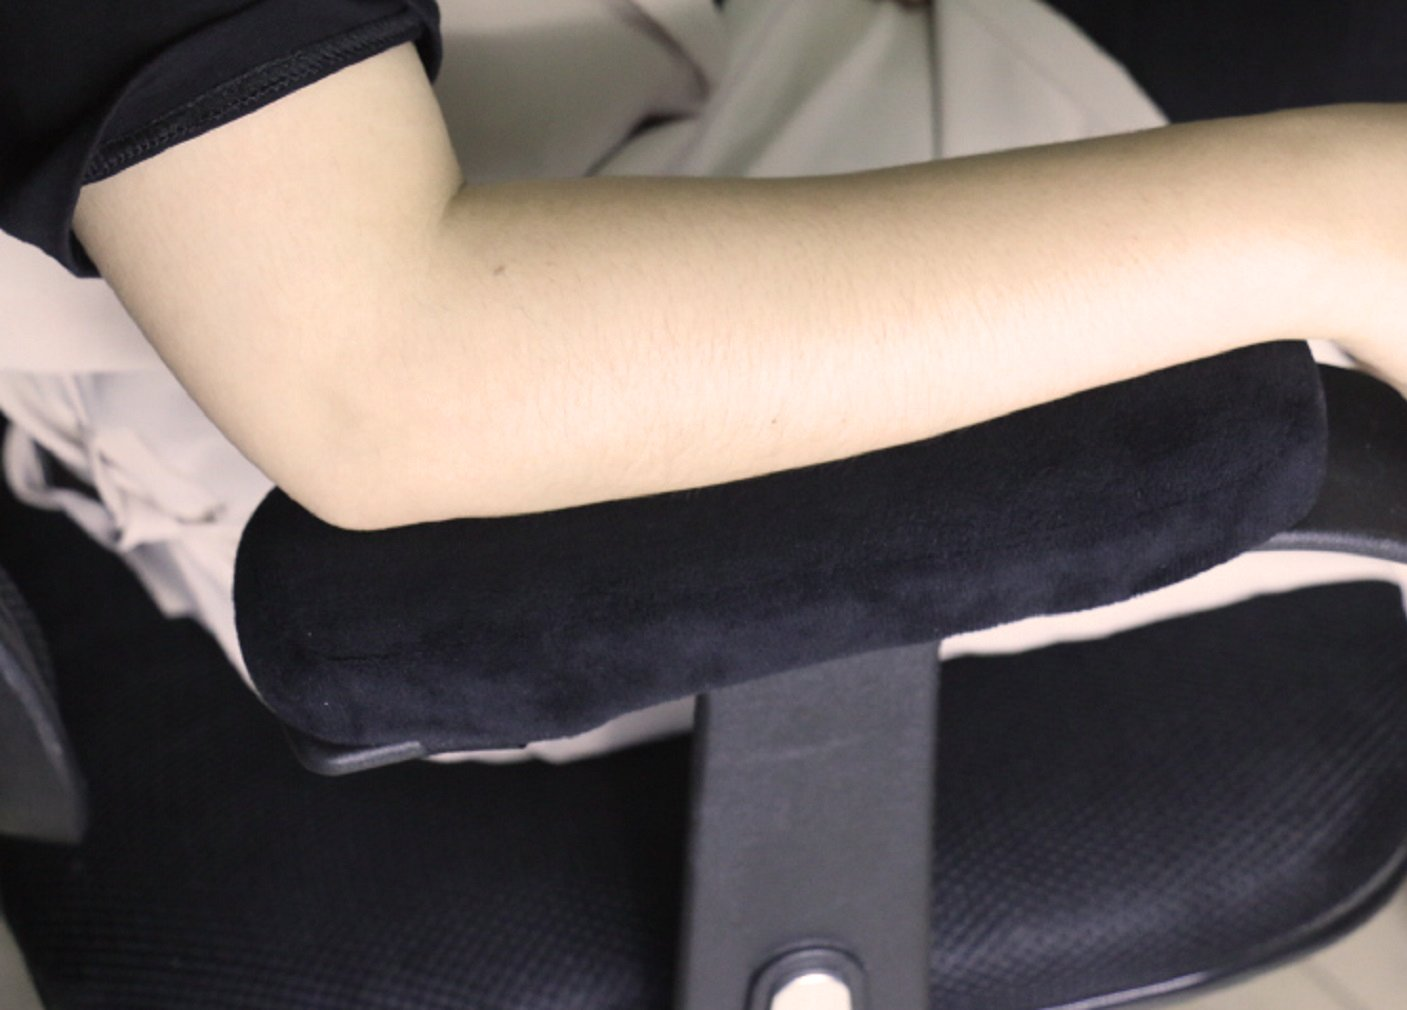 FUYUFU 2pcs Armrest Pad Armchair Cushion Cover Soft Material to Relieve Elbow Pressure Black